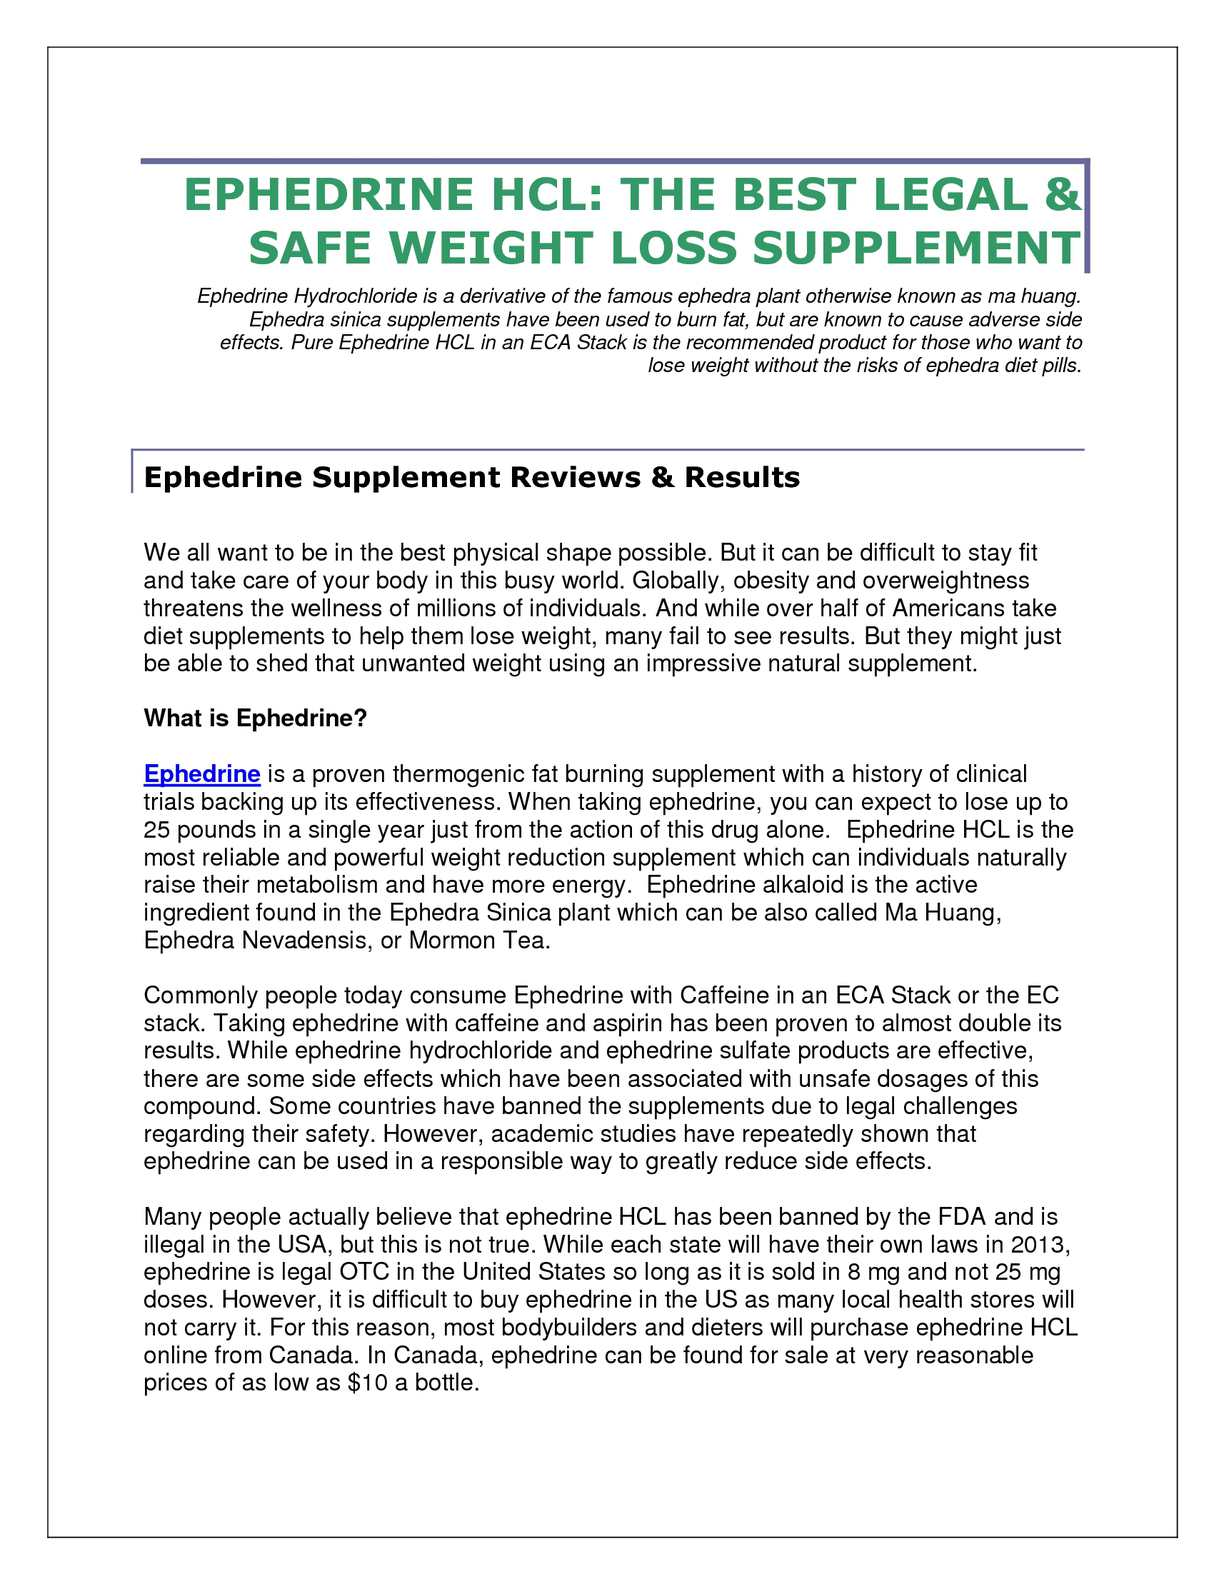 Calaméo - EPHEDRINE HCL: THE BEST LEGAL & SAFE WEIGHT LOSS